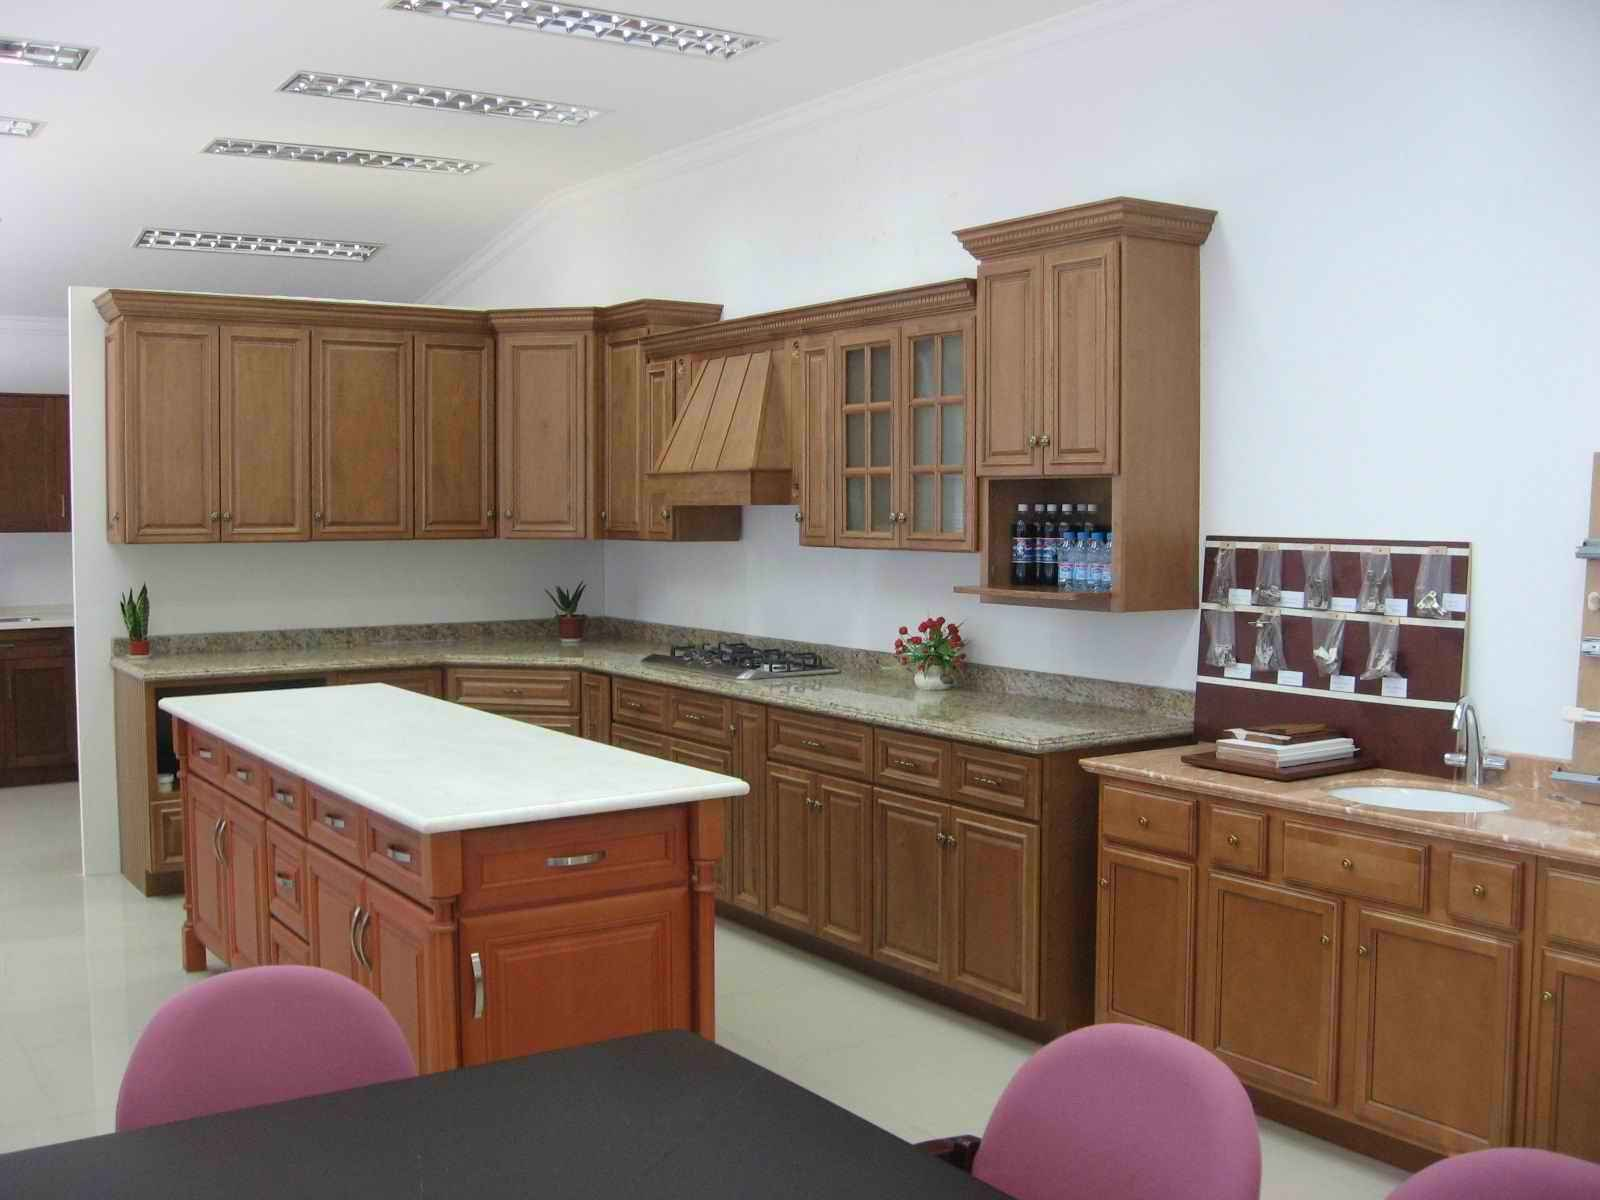 Home depot kitchens feel the home for Cheap kitchen cabinets home depot